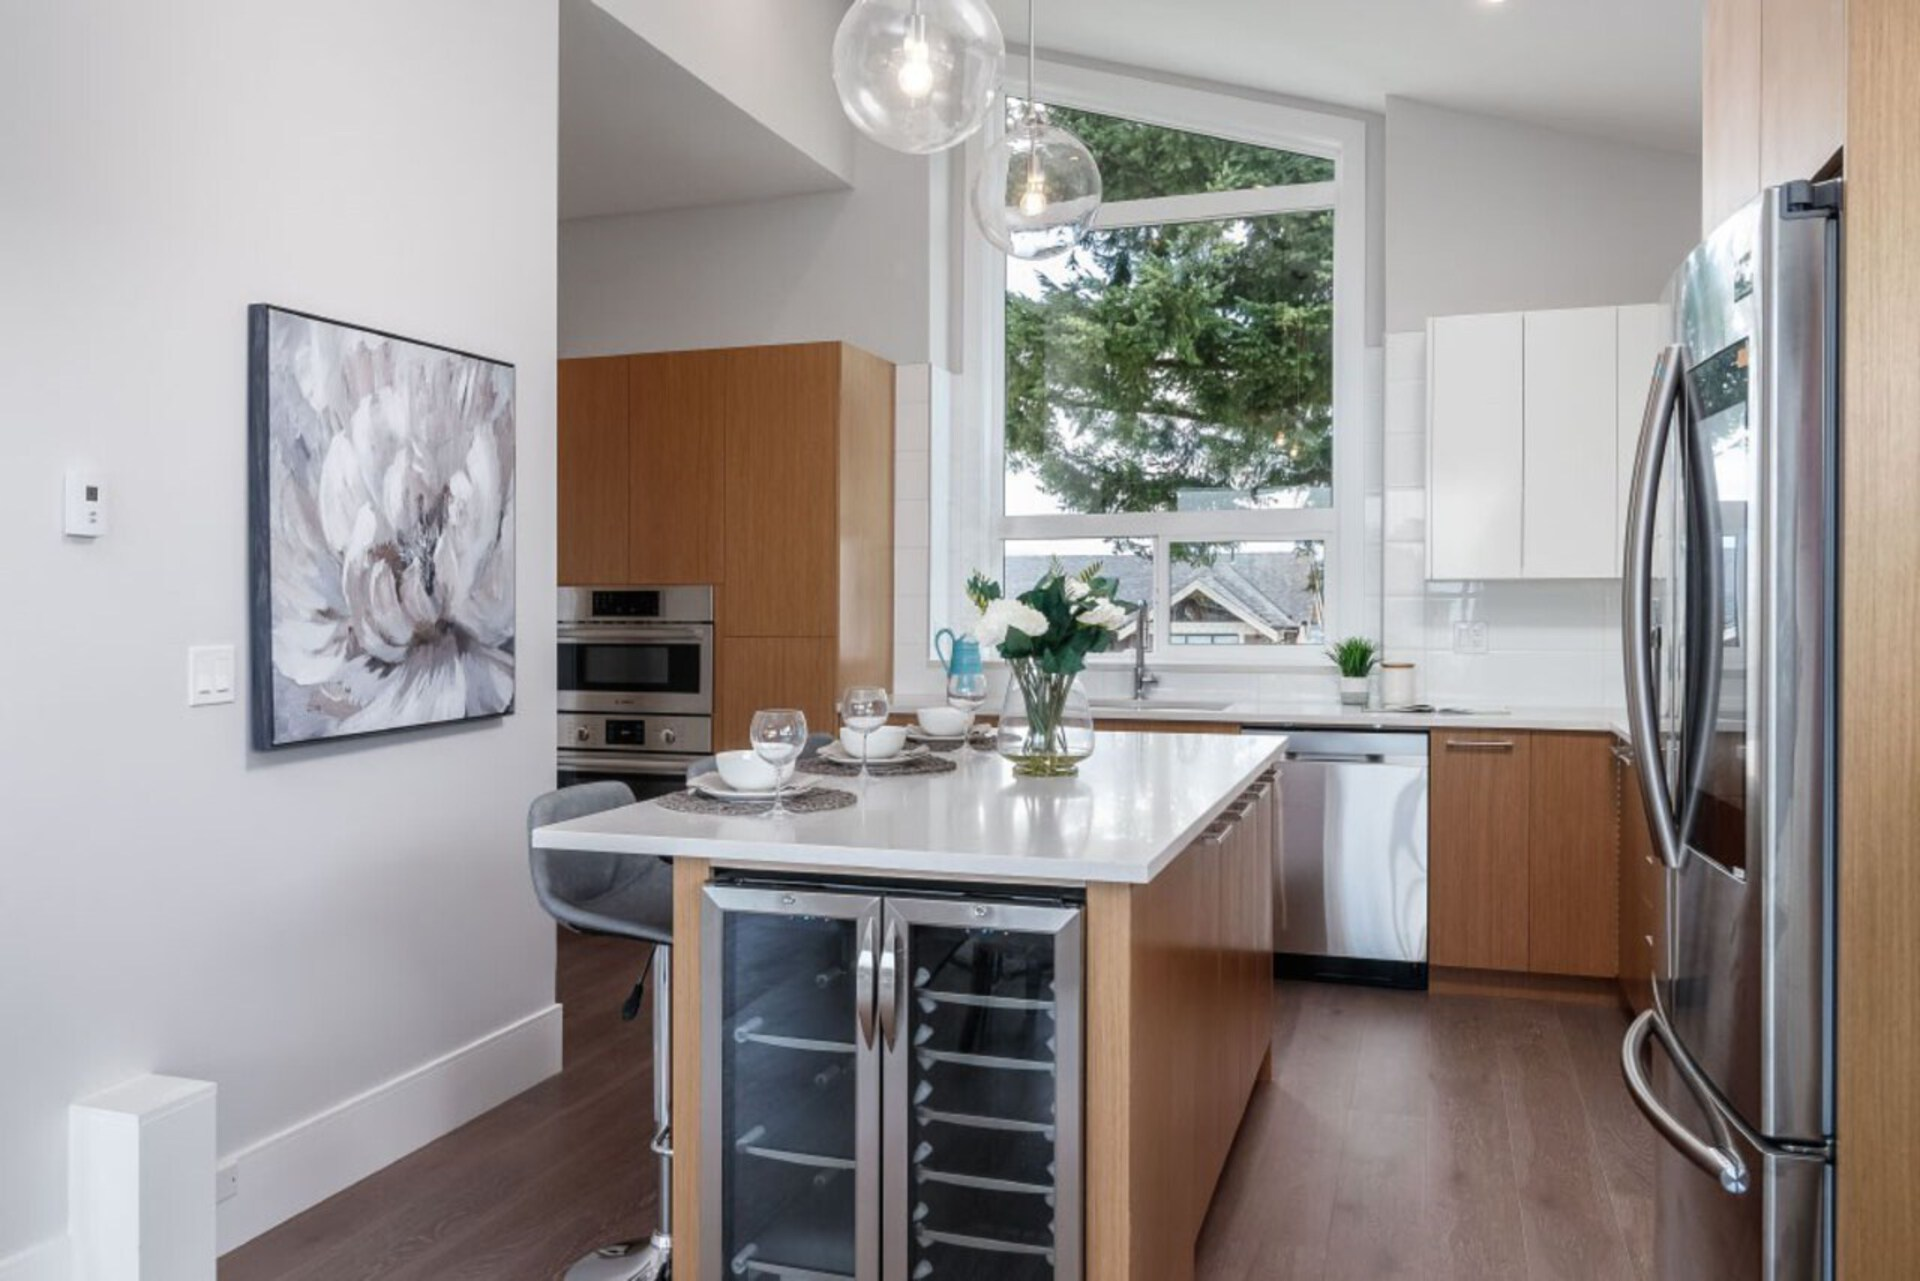 33-howard-avenue-capitol-hill-bn-burnaby-north-02 at 33 Howard Avenue, Capitol Hill BN, Burnaby North